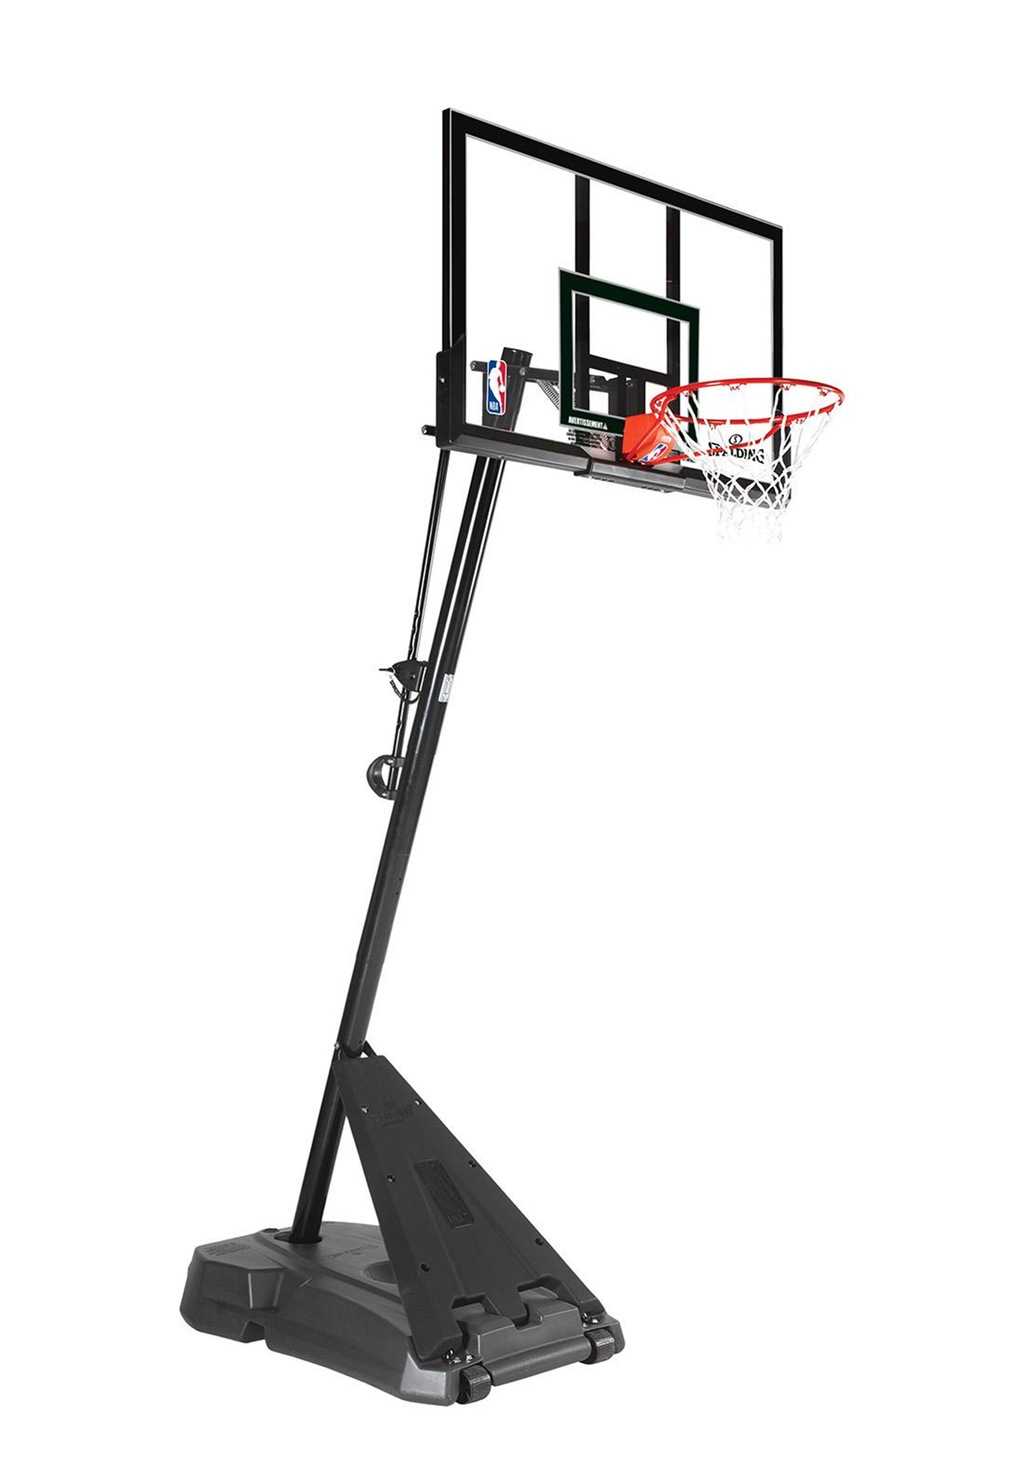 SPALDING 52 INCH ACRYLIC HERCULES PORTABLE BASKETBALL SYSTEM )<br> SP52HERCR